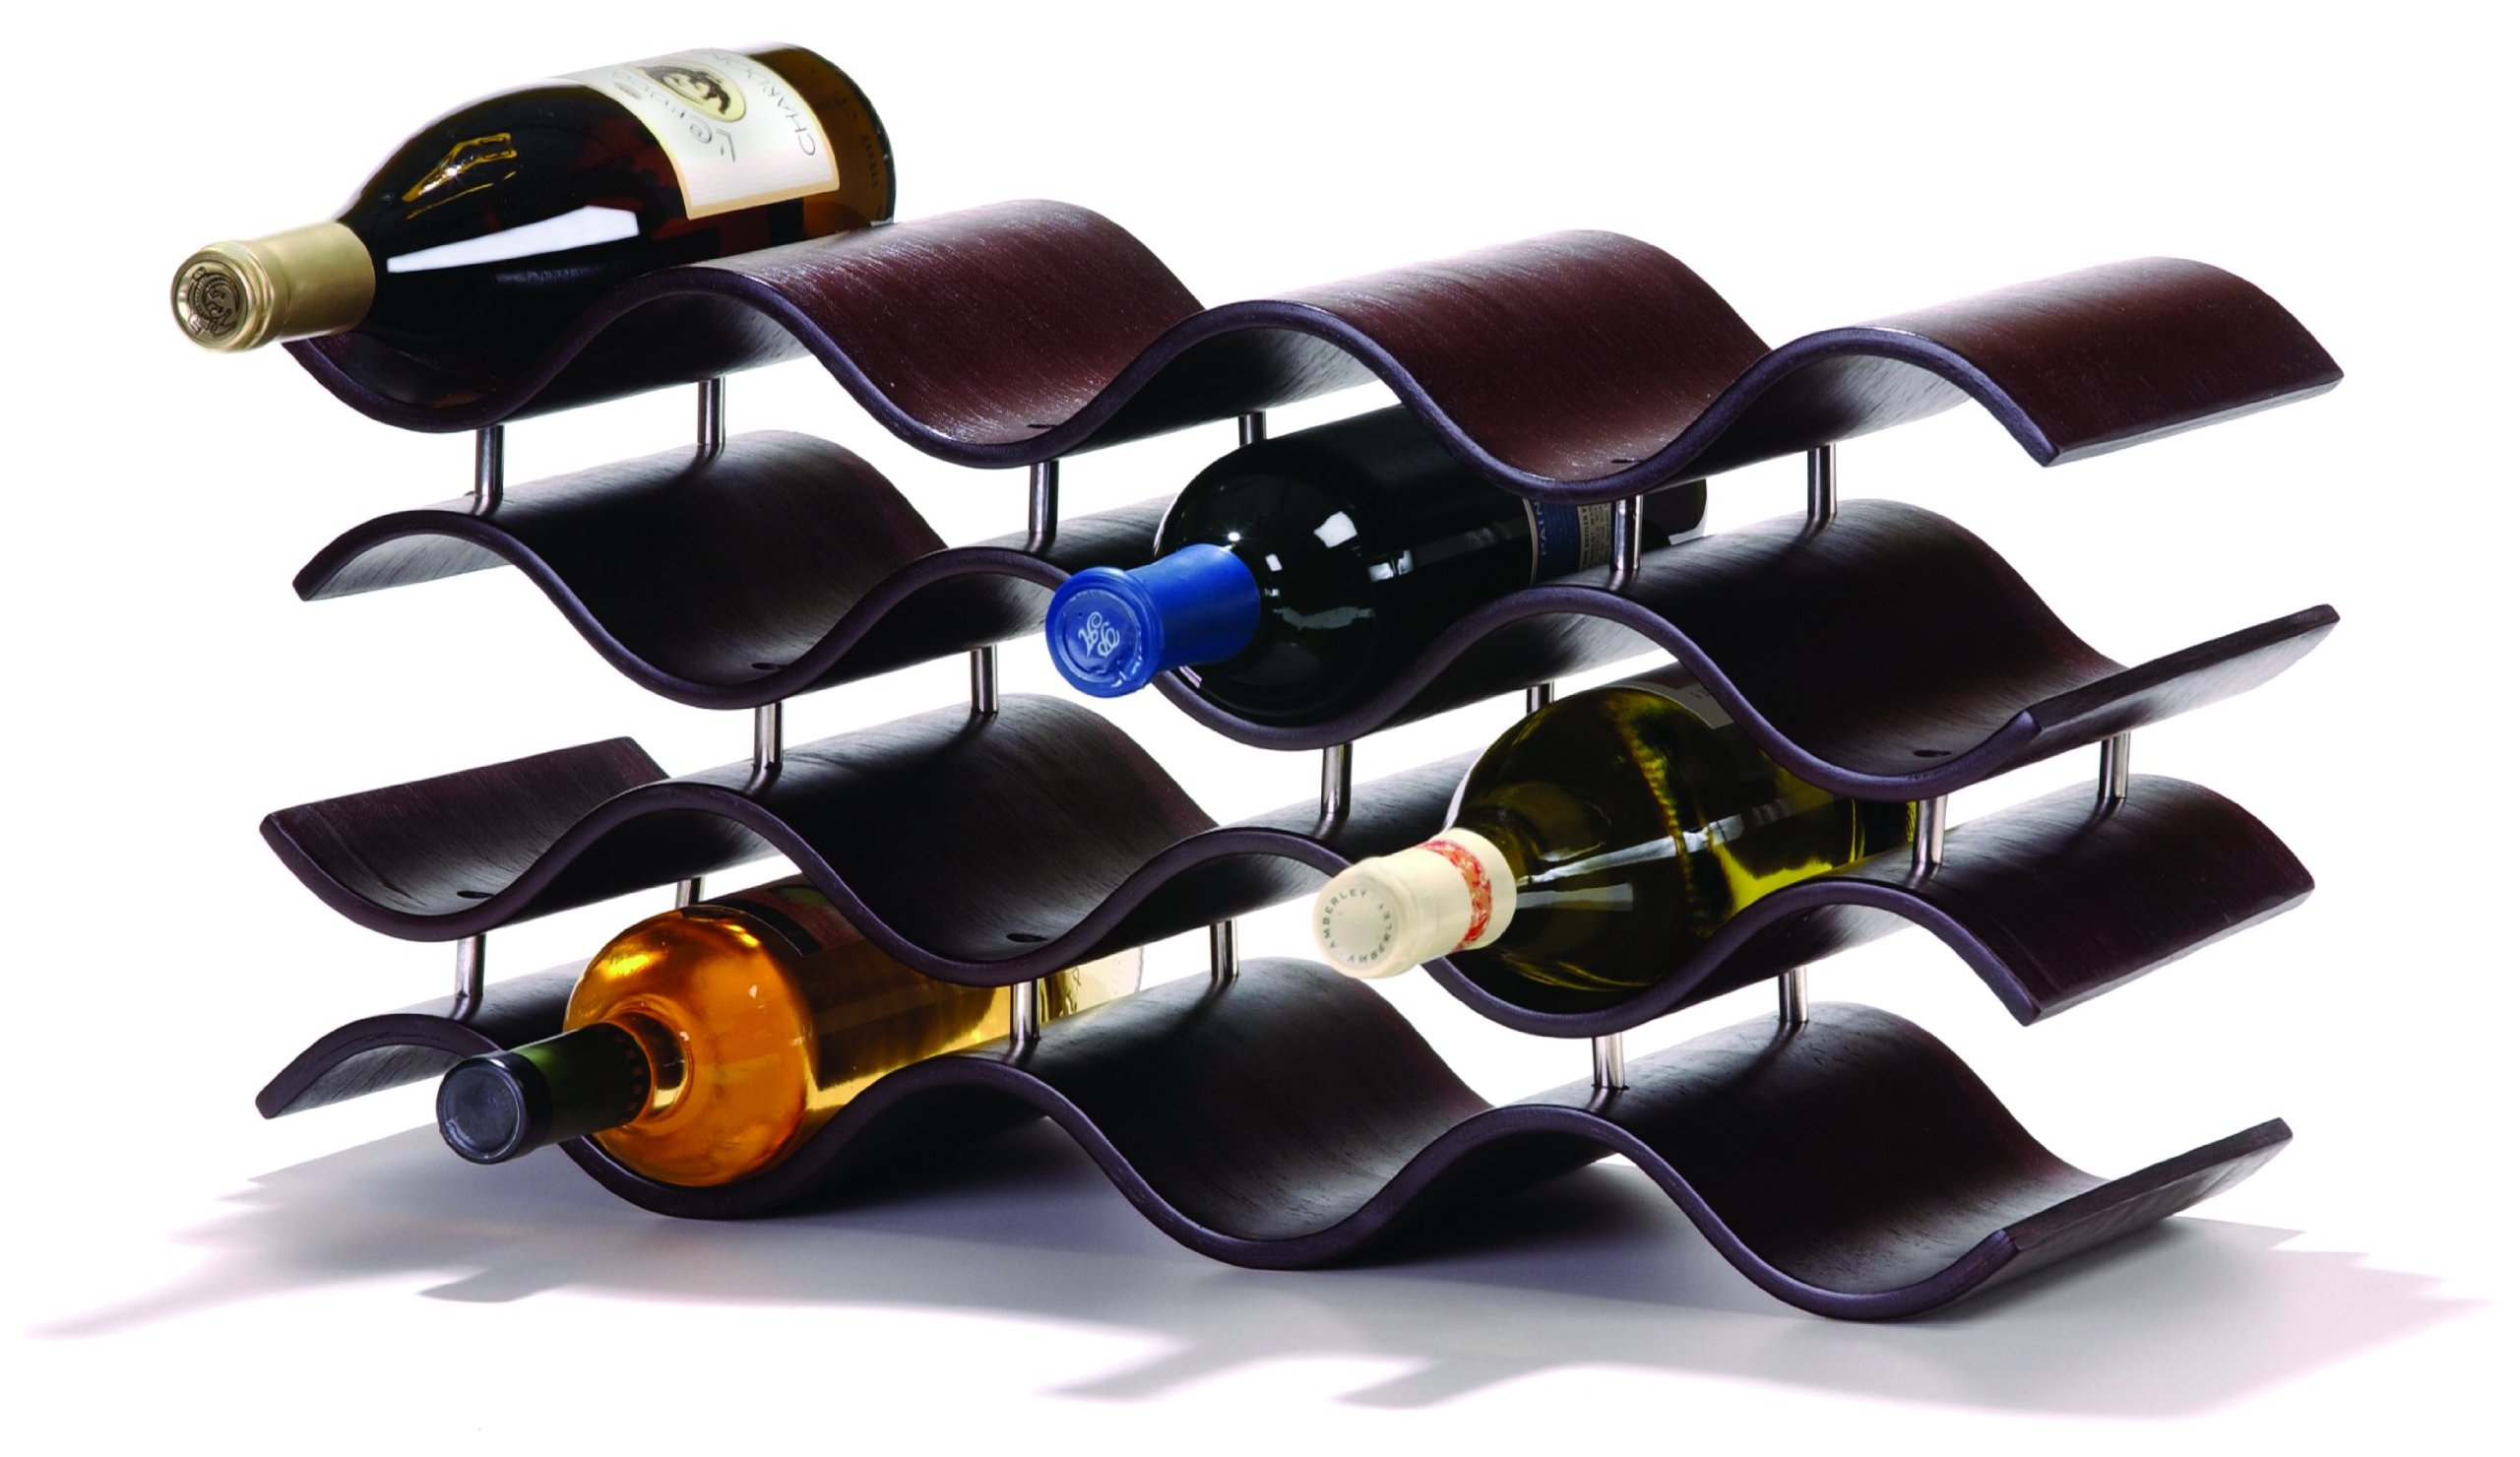 Oenophilia Bali Wine Rack, Ebony - 12 Bottle, Solid Wood, Elegant Modern Wine Rack, Table Wine Storage (010200)